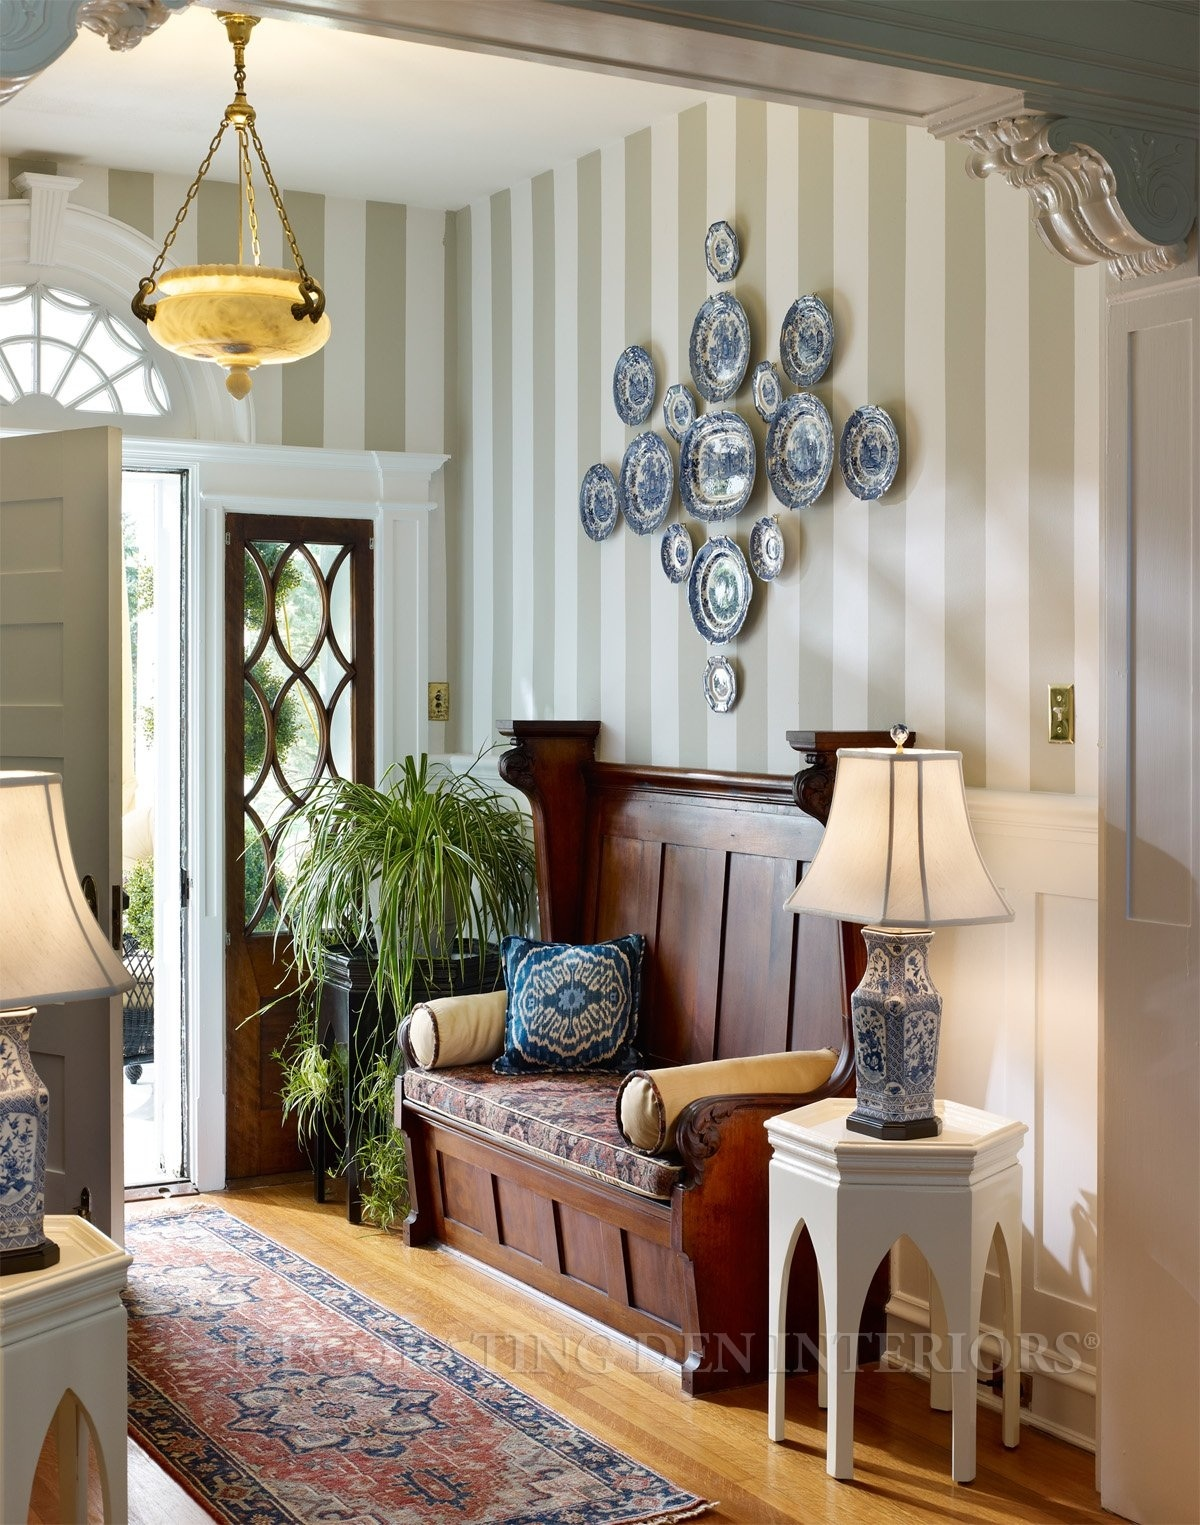 foyer_small-entryway-with-wood-flooring-area-rug-and-blue-china-accents